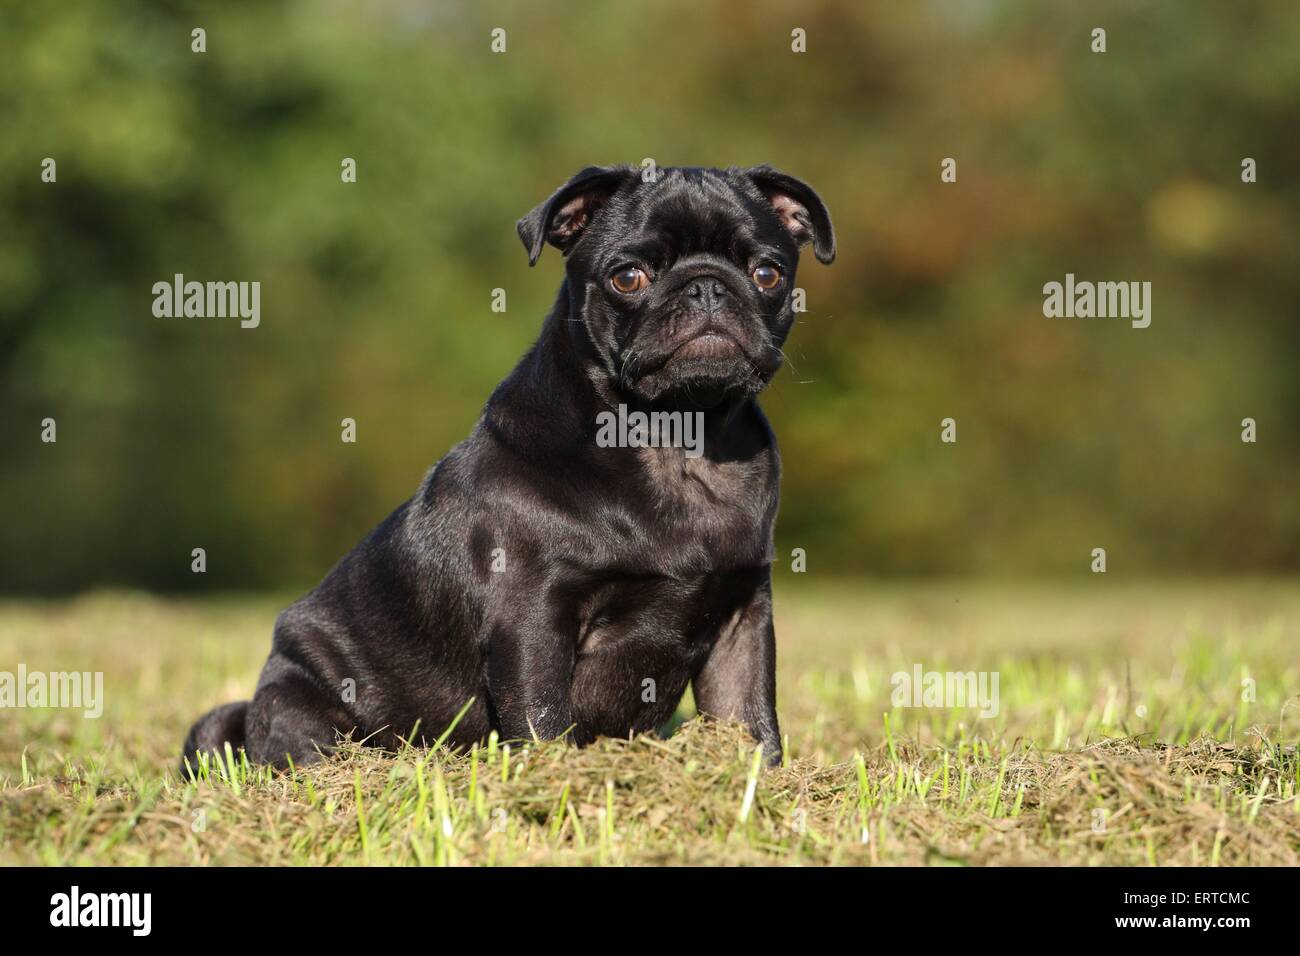 sitting pug - Stock Image